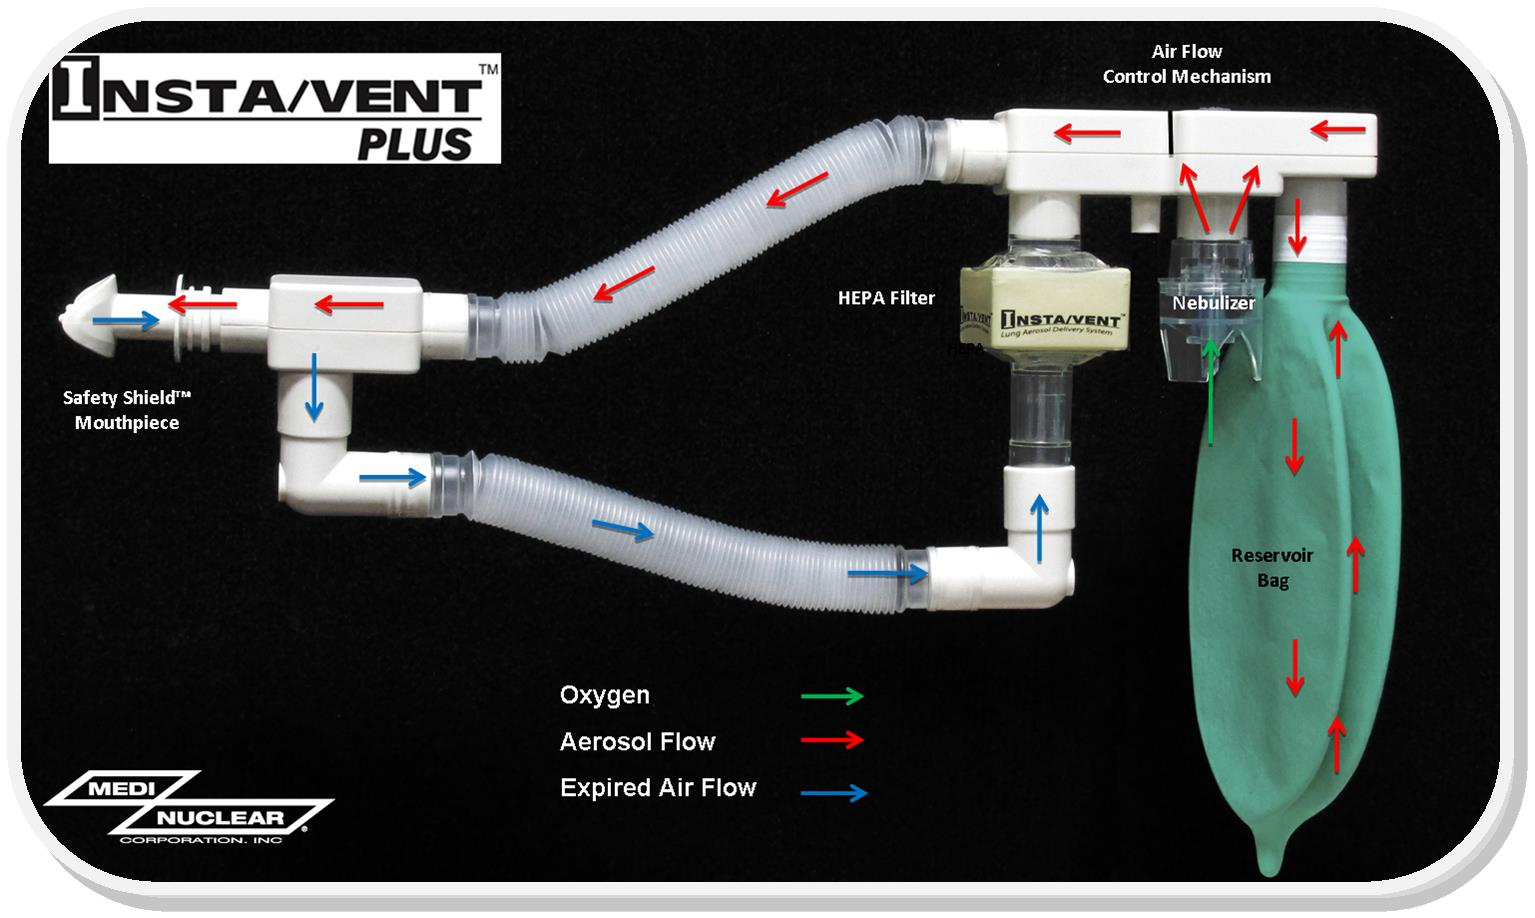 Insta/Vent Airflow Diagram